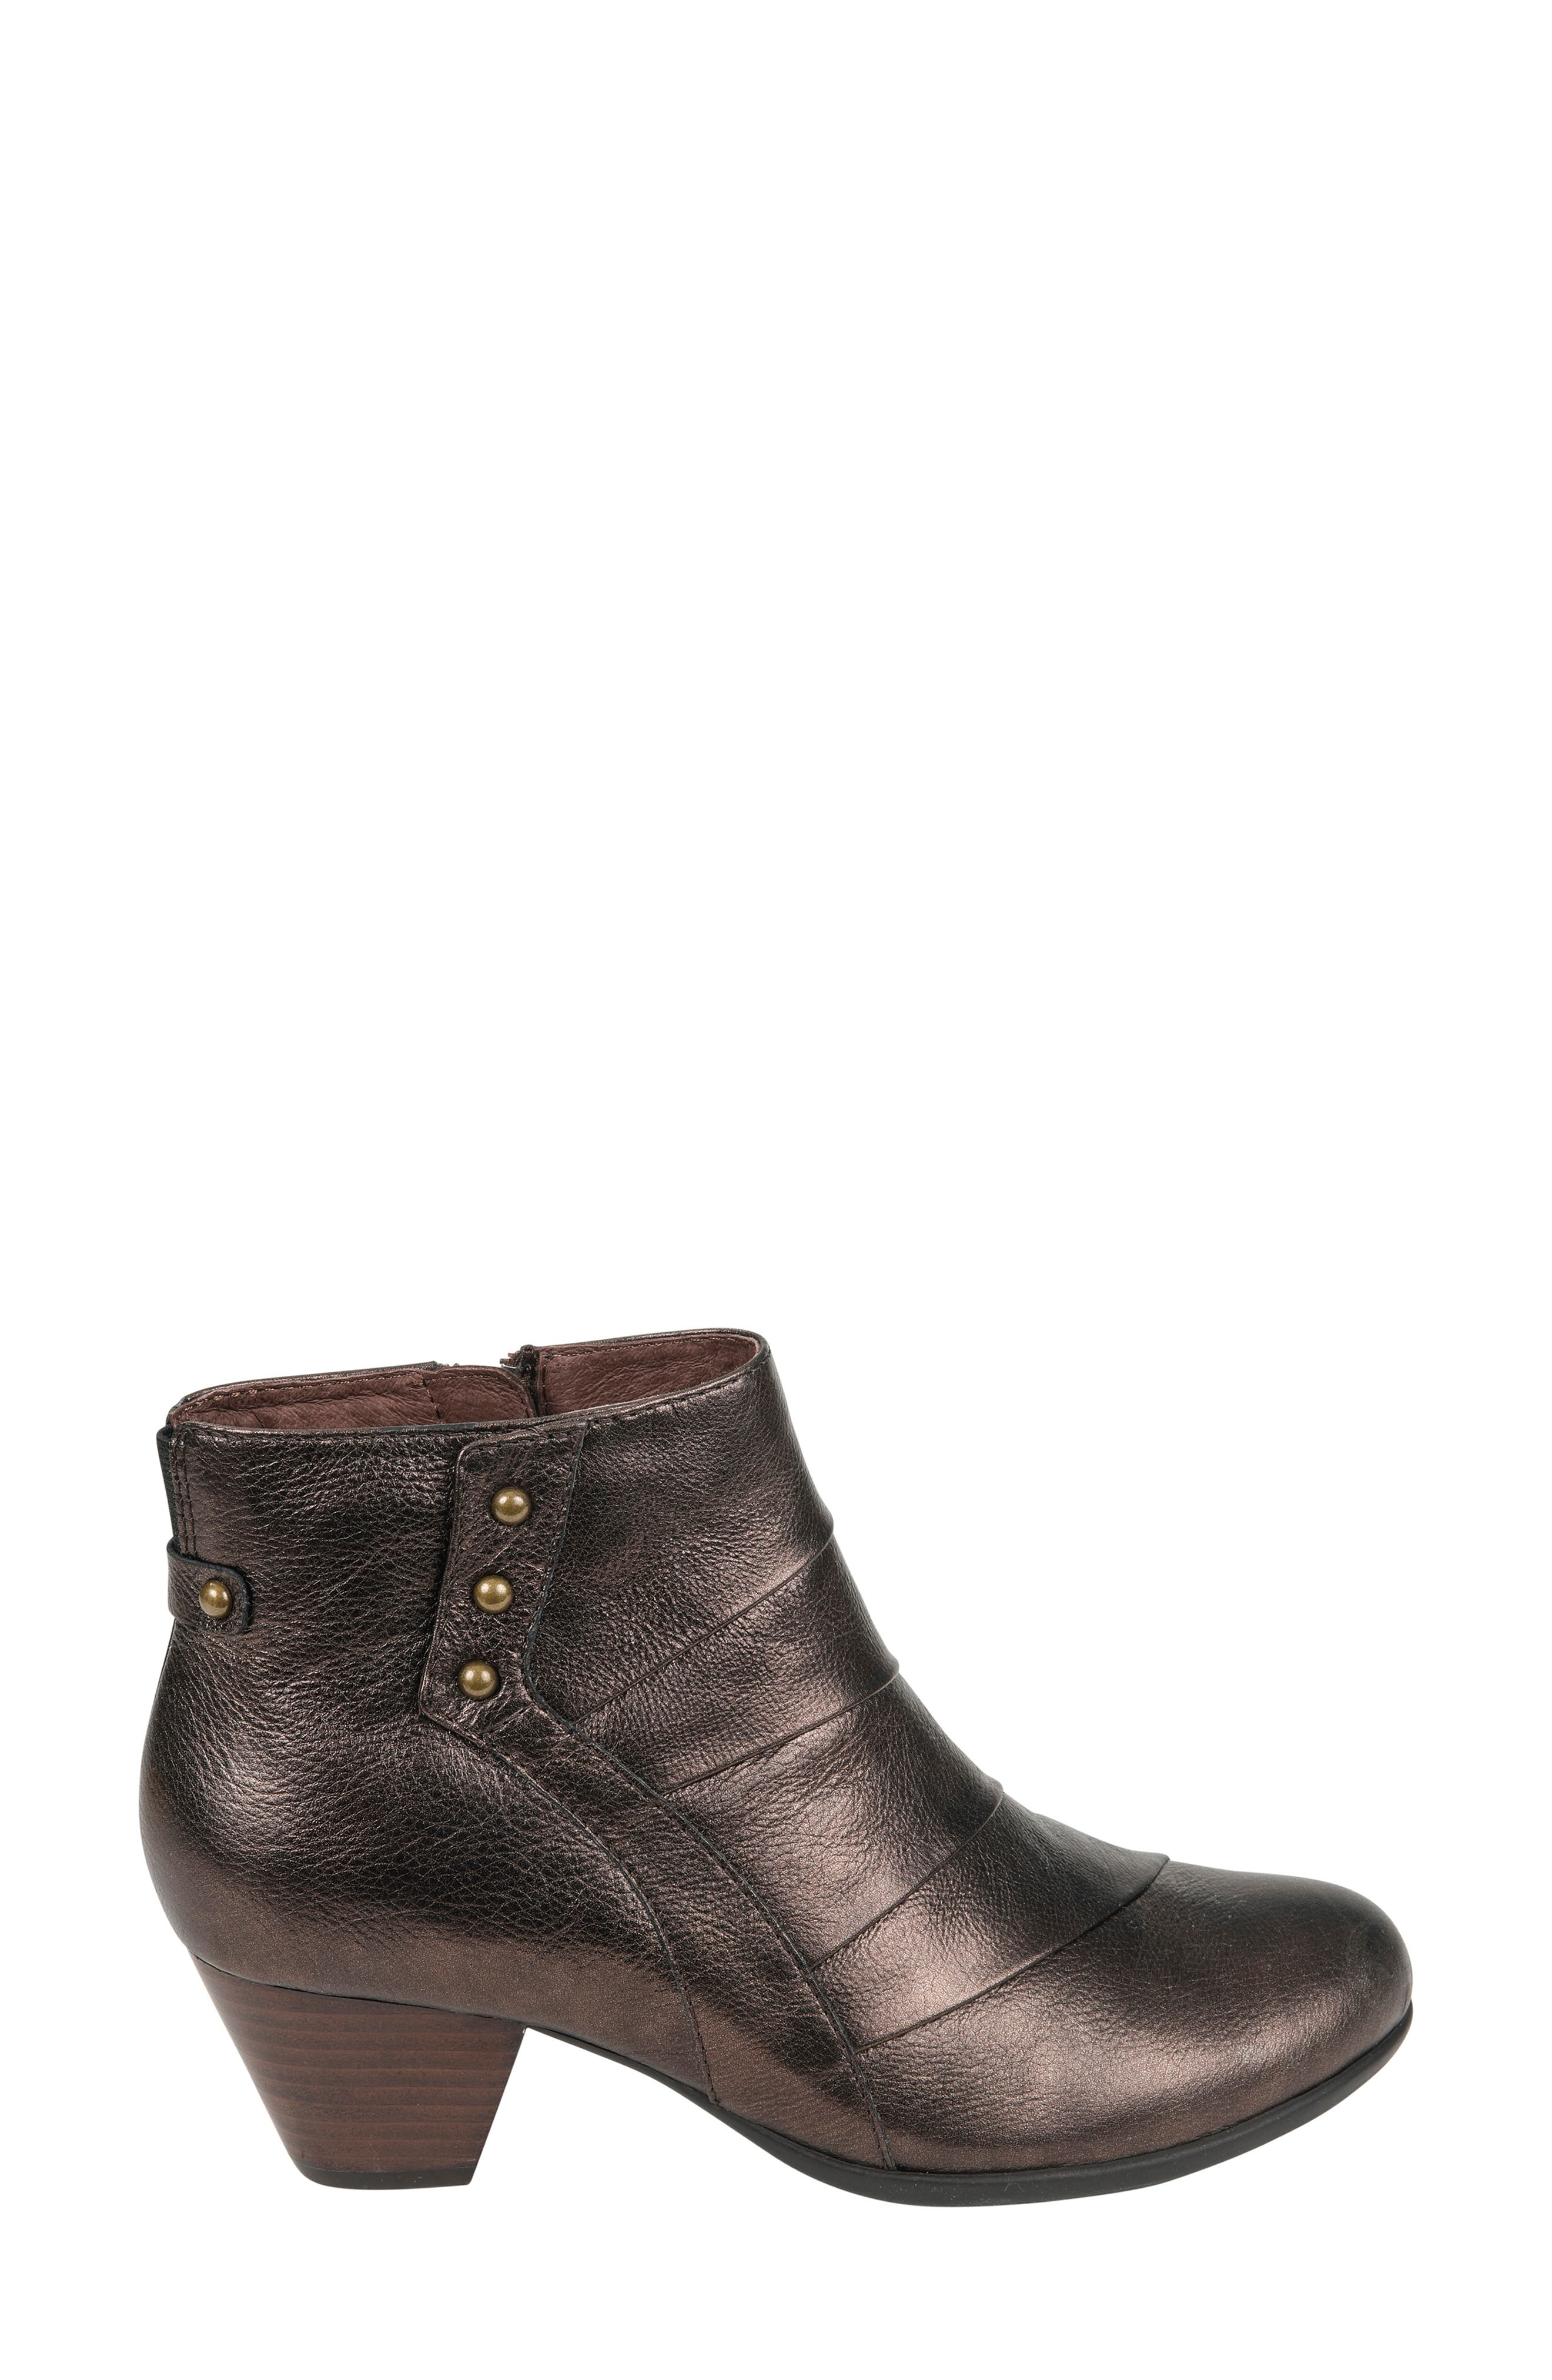 Hope Bootie,                             Alternate thumbnail 3, color,                             BRONZE LEATHER